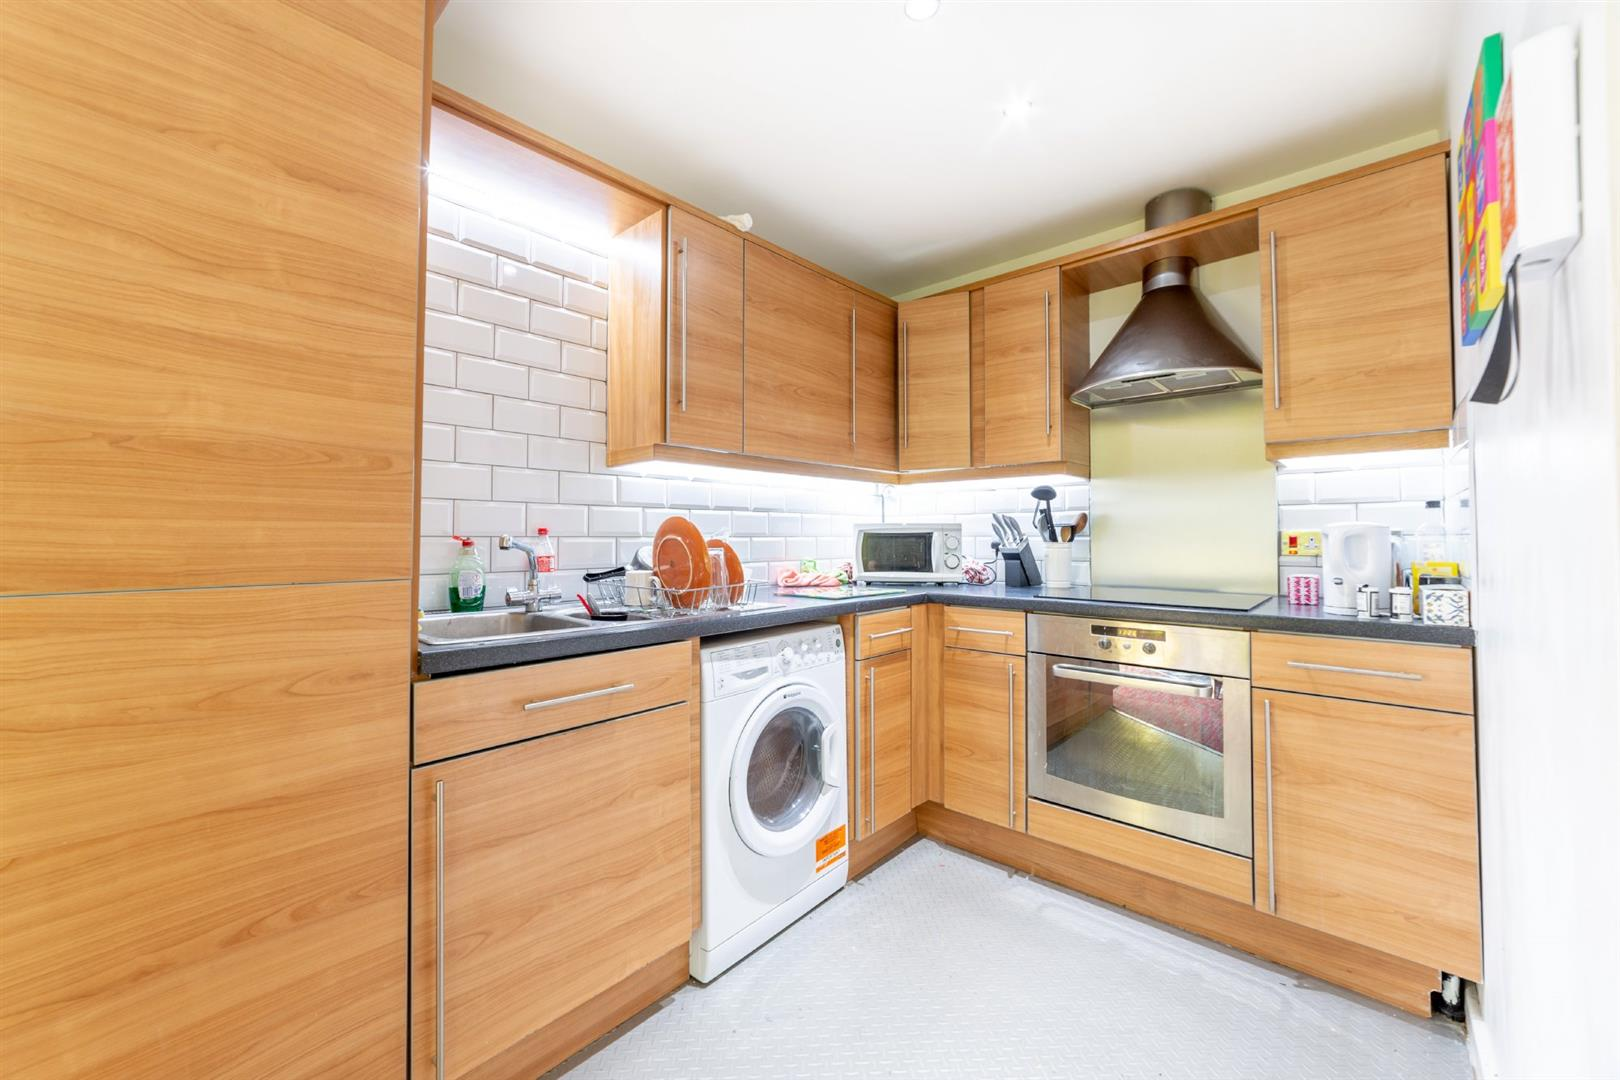 3 bed apartment to rent in Newcastle Upon Tyne, NE1 2JR, NE1